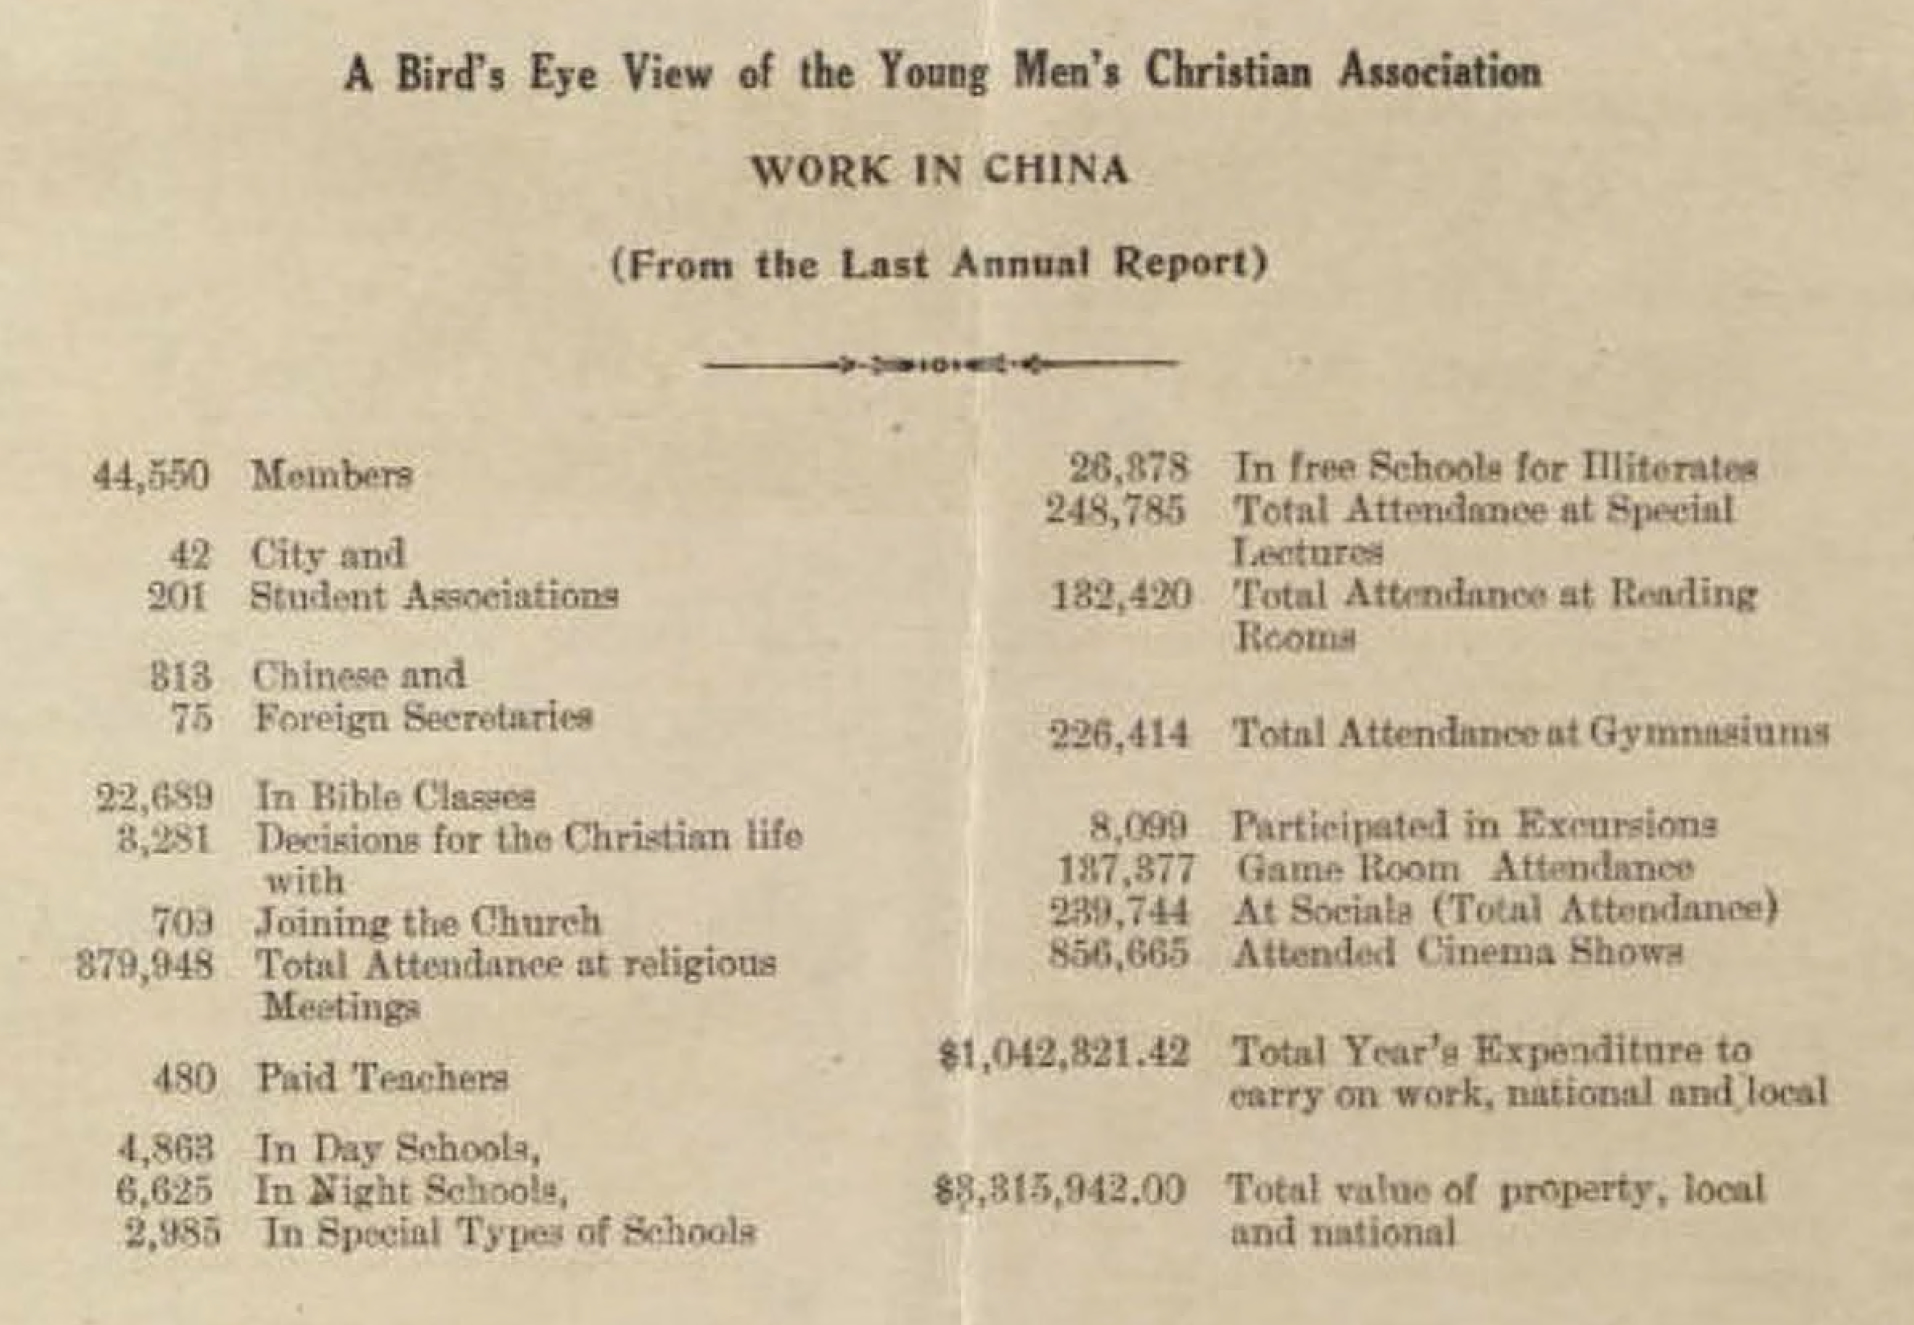 Constructive Activities of the Young Men's Christian Associations of China, 1925. (Dec. 01, 1925). Annual and Quarterly Reports of the YMCAs of China, Korea, and Hong Kong, 1902-1904, Box 18, Folder 4, PDF p. 14. Univ. of Minnesota, Kautz Family YMCA Archives.